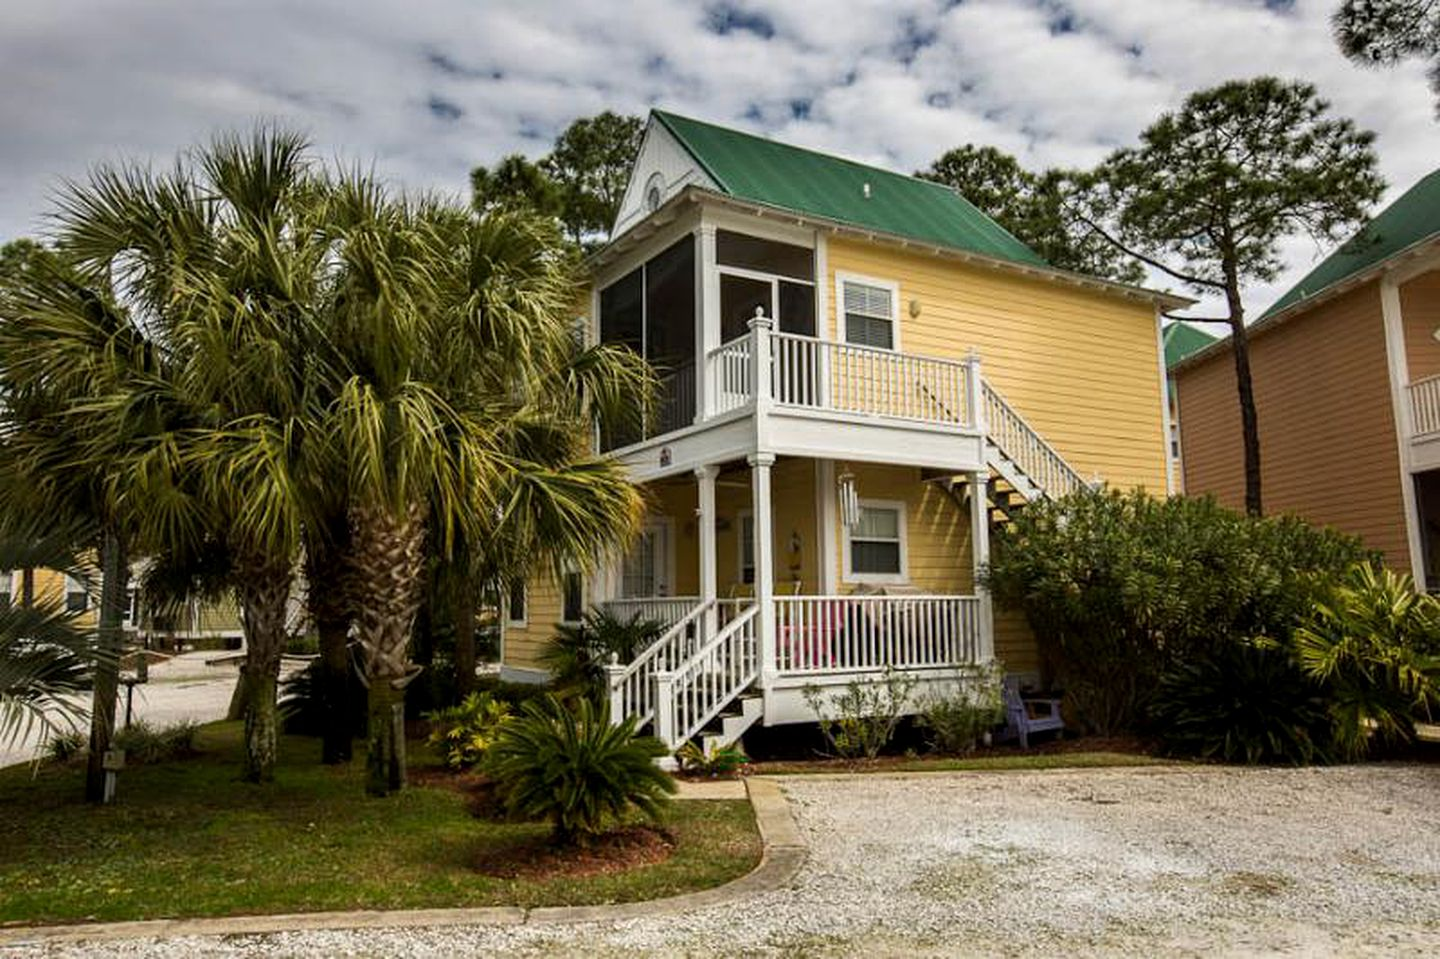 Cottages (Perdido Key, Florida, United States)